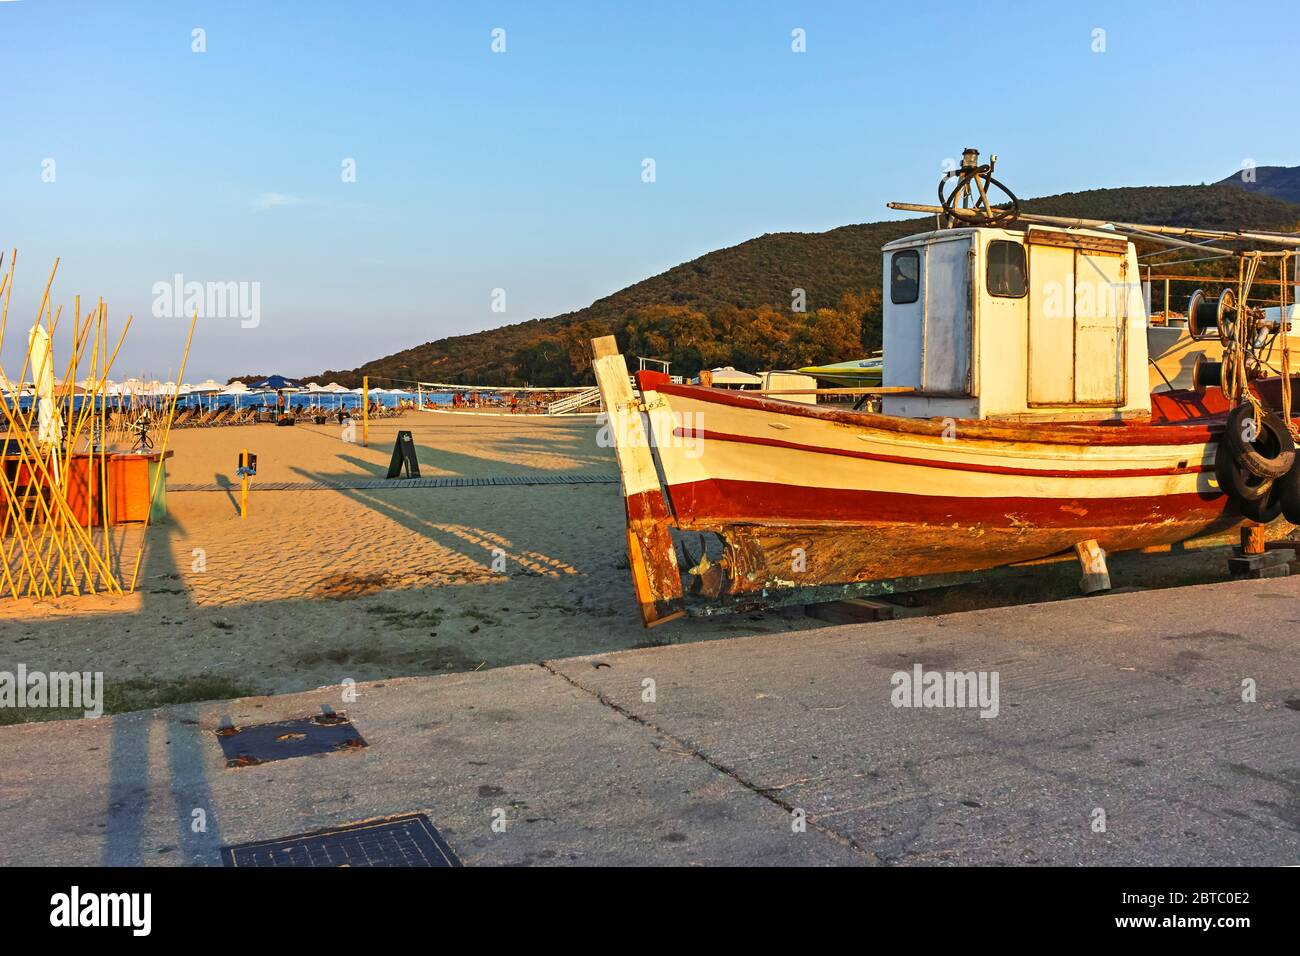 STAVROS, GREECE - AUGUST 19, 2019:  Sunset at coastline of village of Stavros, Chalkidiki, Central Macedonia, Greece Stock Photo